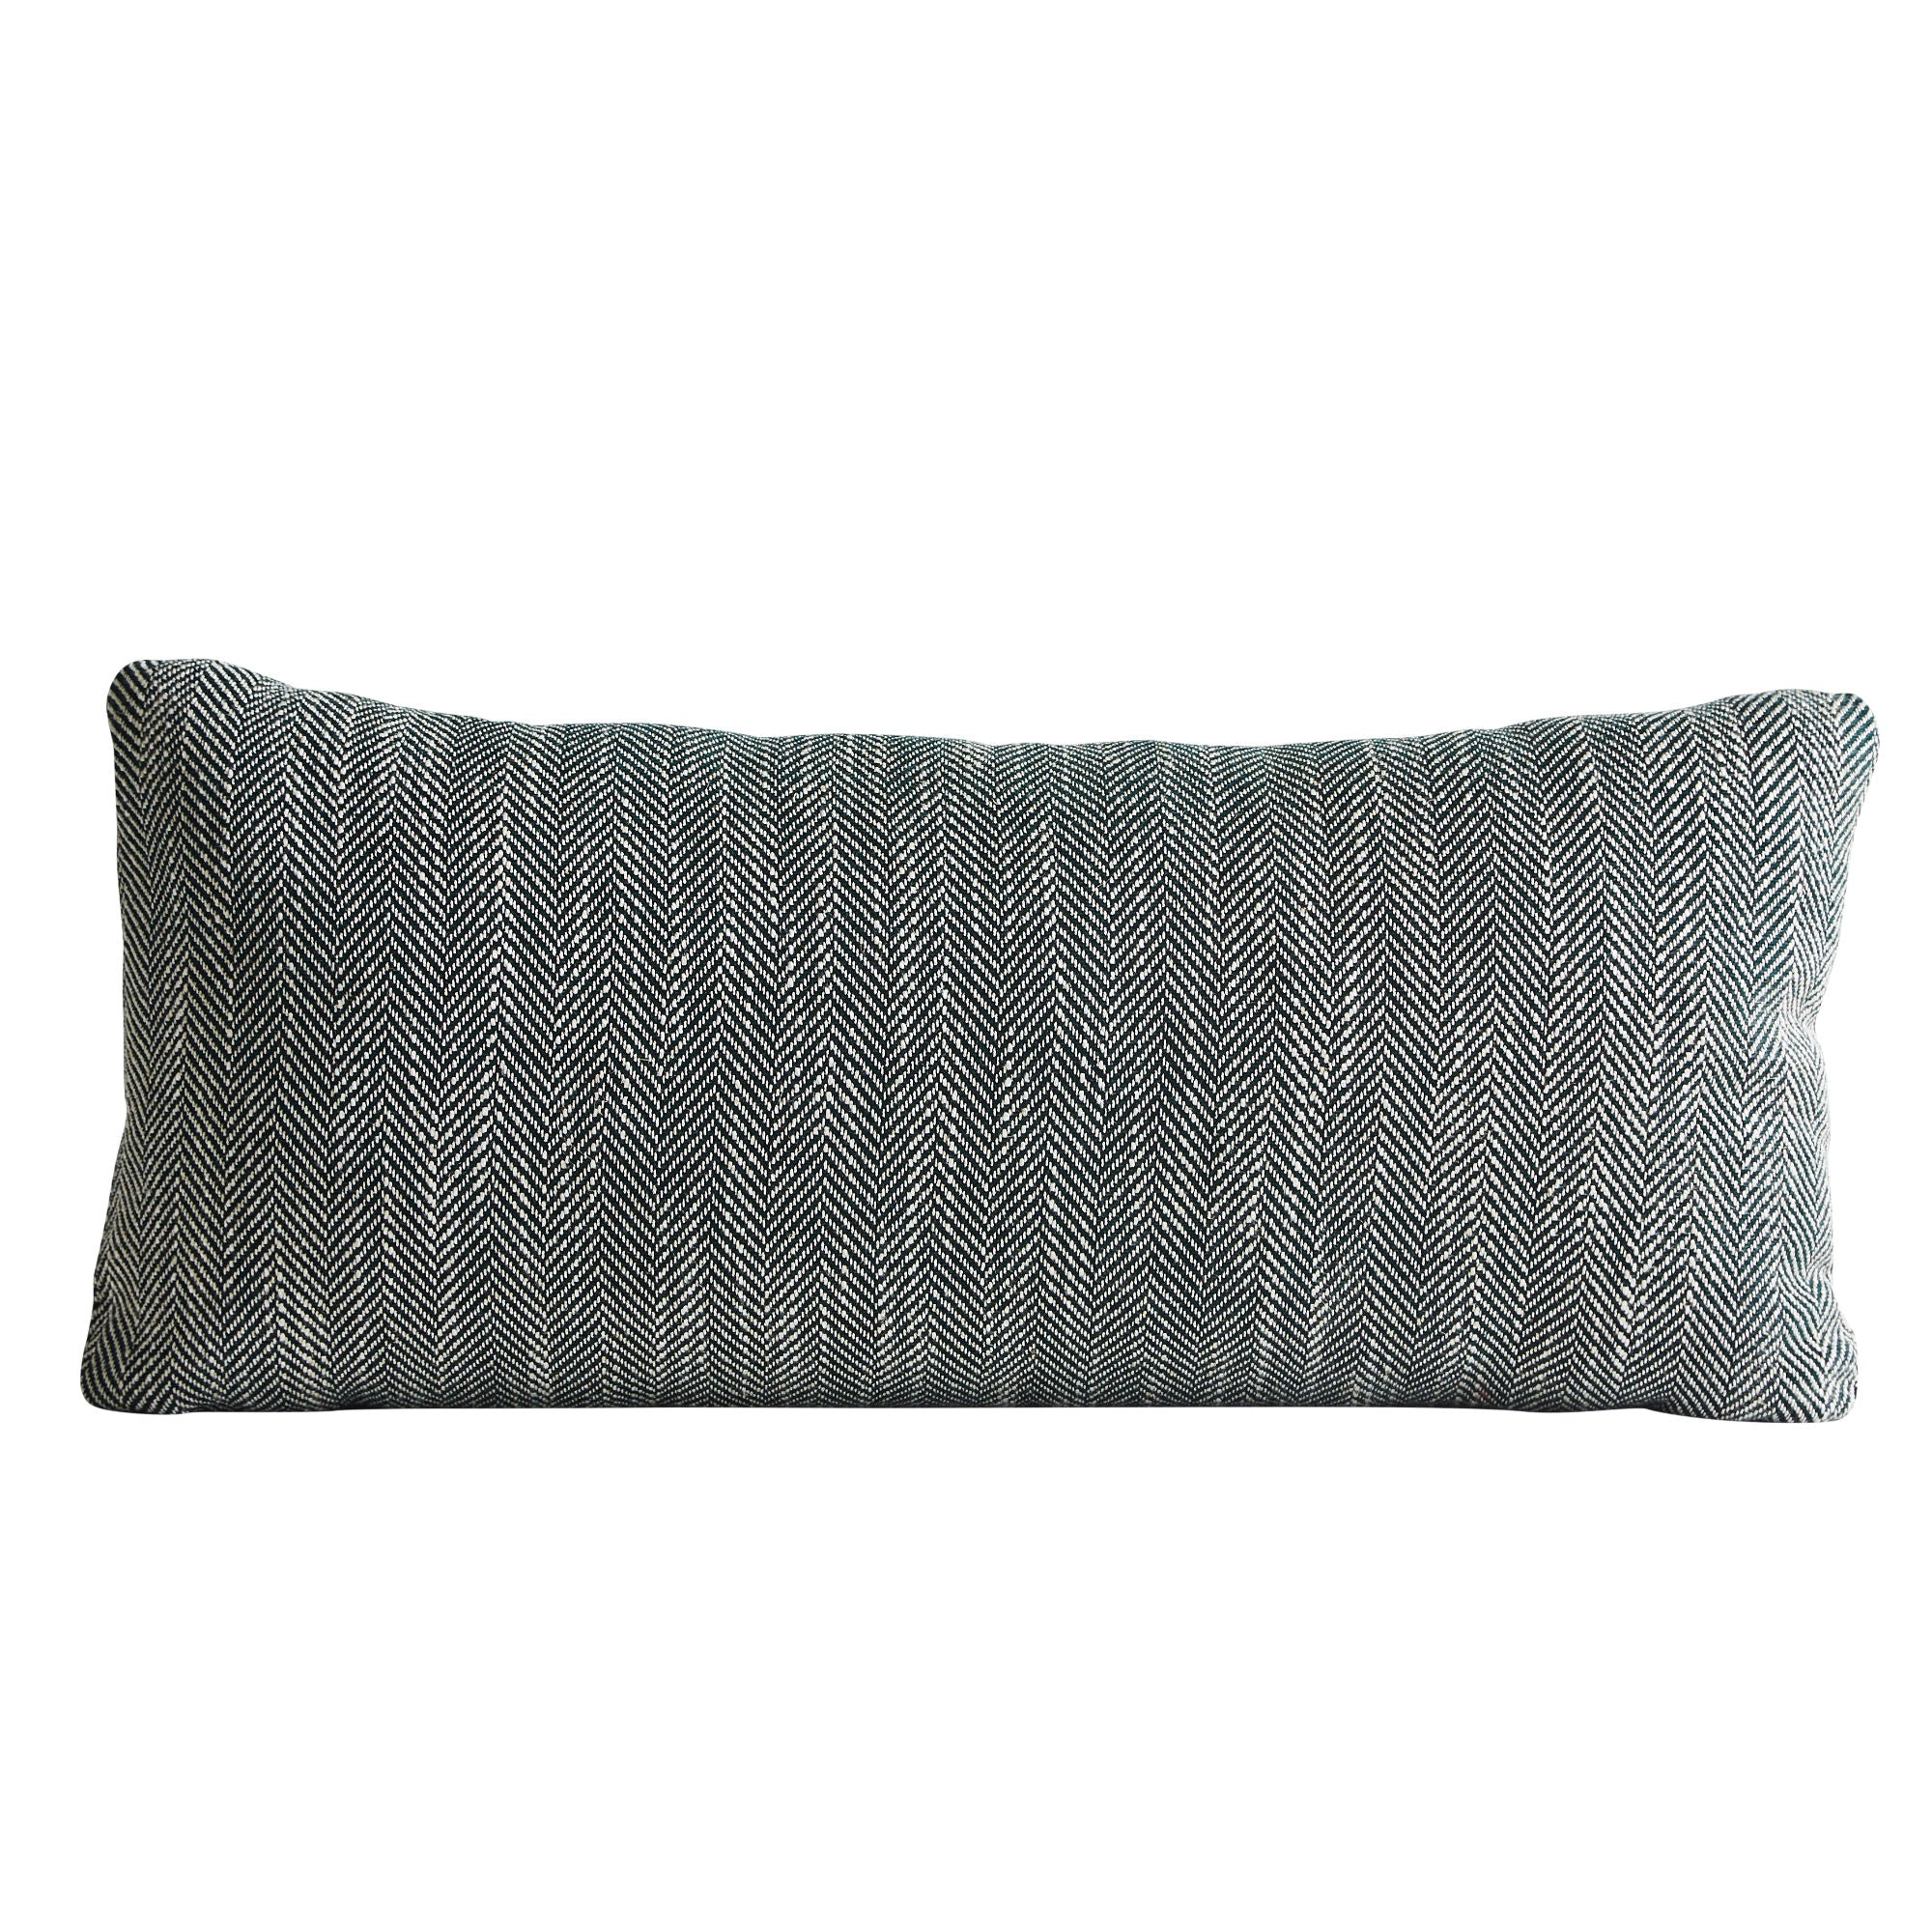 Woud Herrinbone Cushion , Forest Green